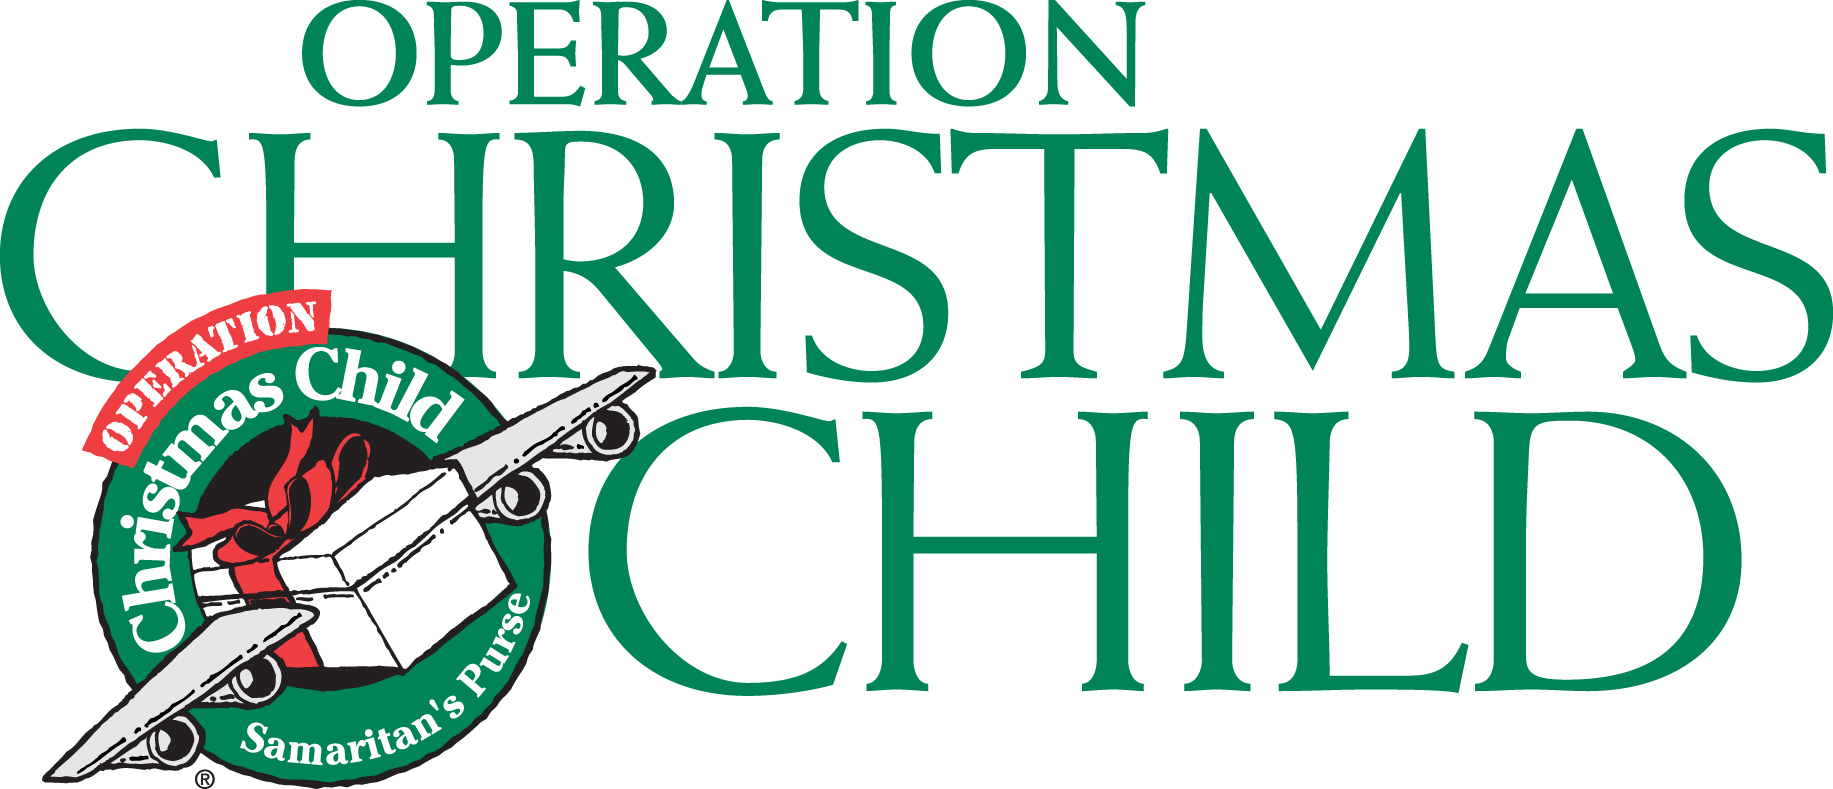 Operation Christmas Child ... - Operation Christmas Child Clipart